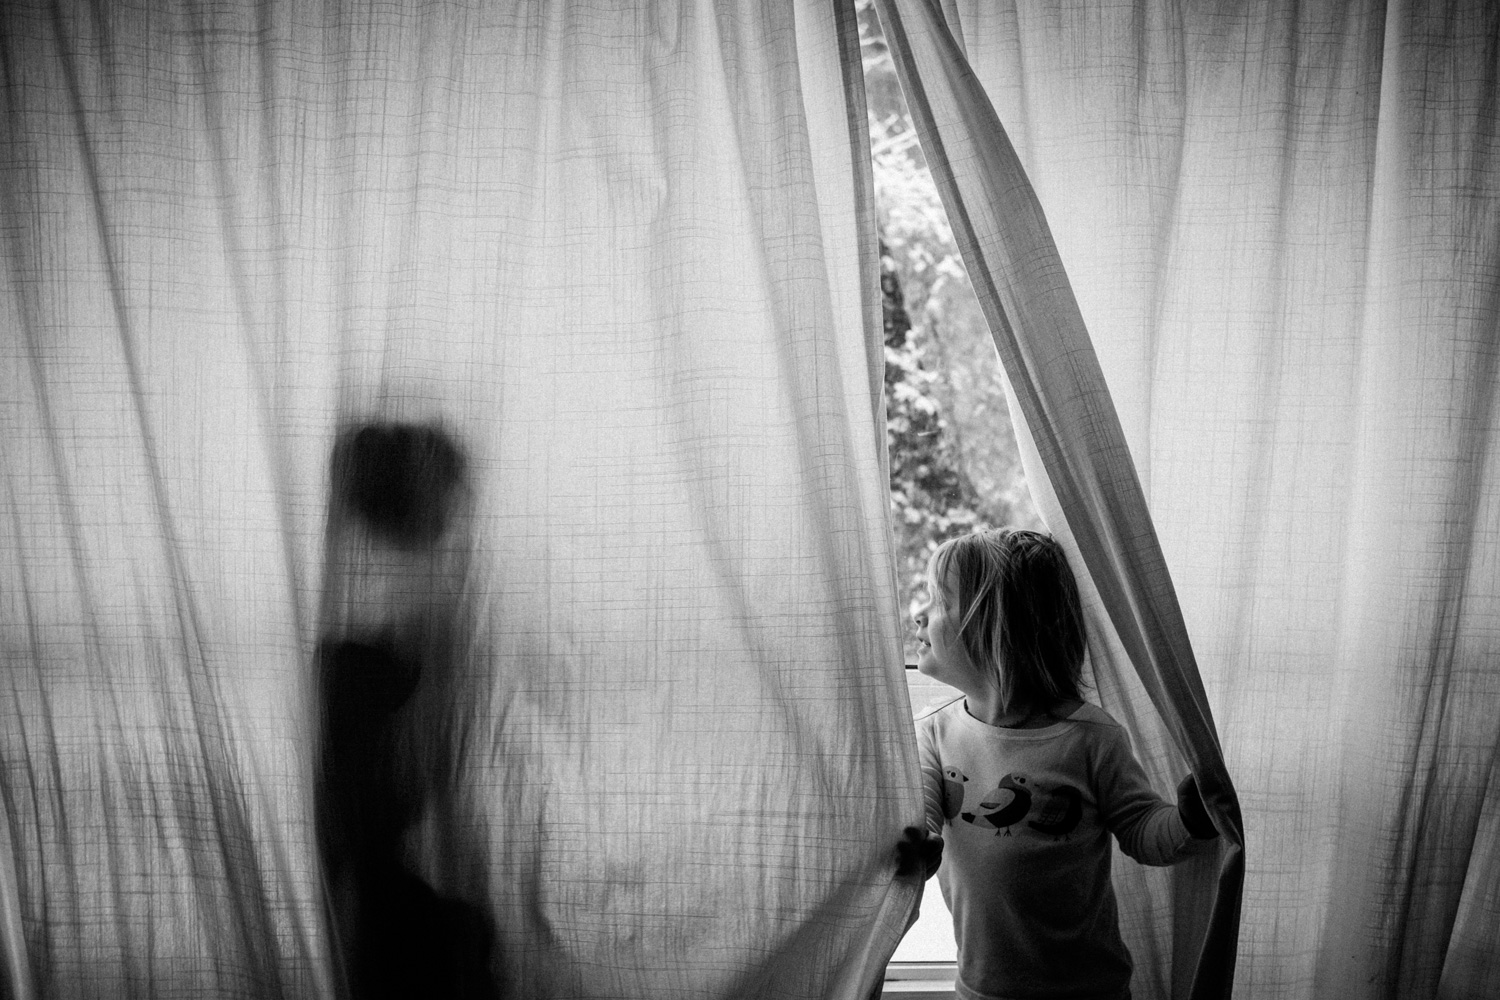 Window silhouette of 2 kids - 3 Quotes for the Creative Photographer